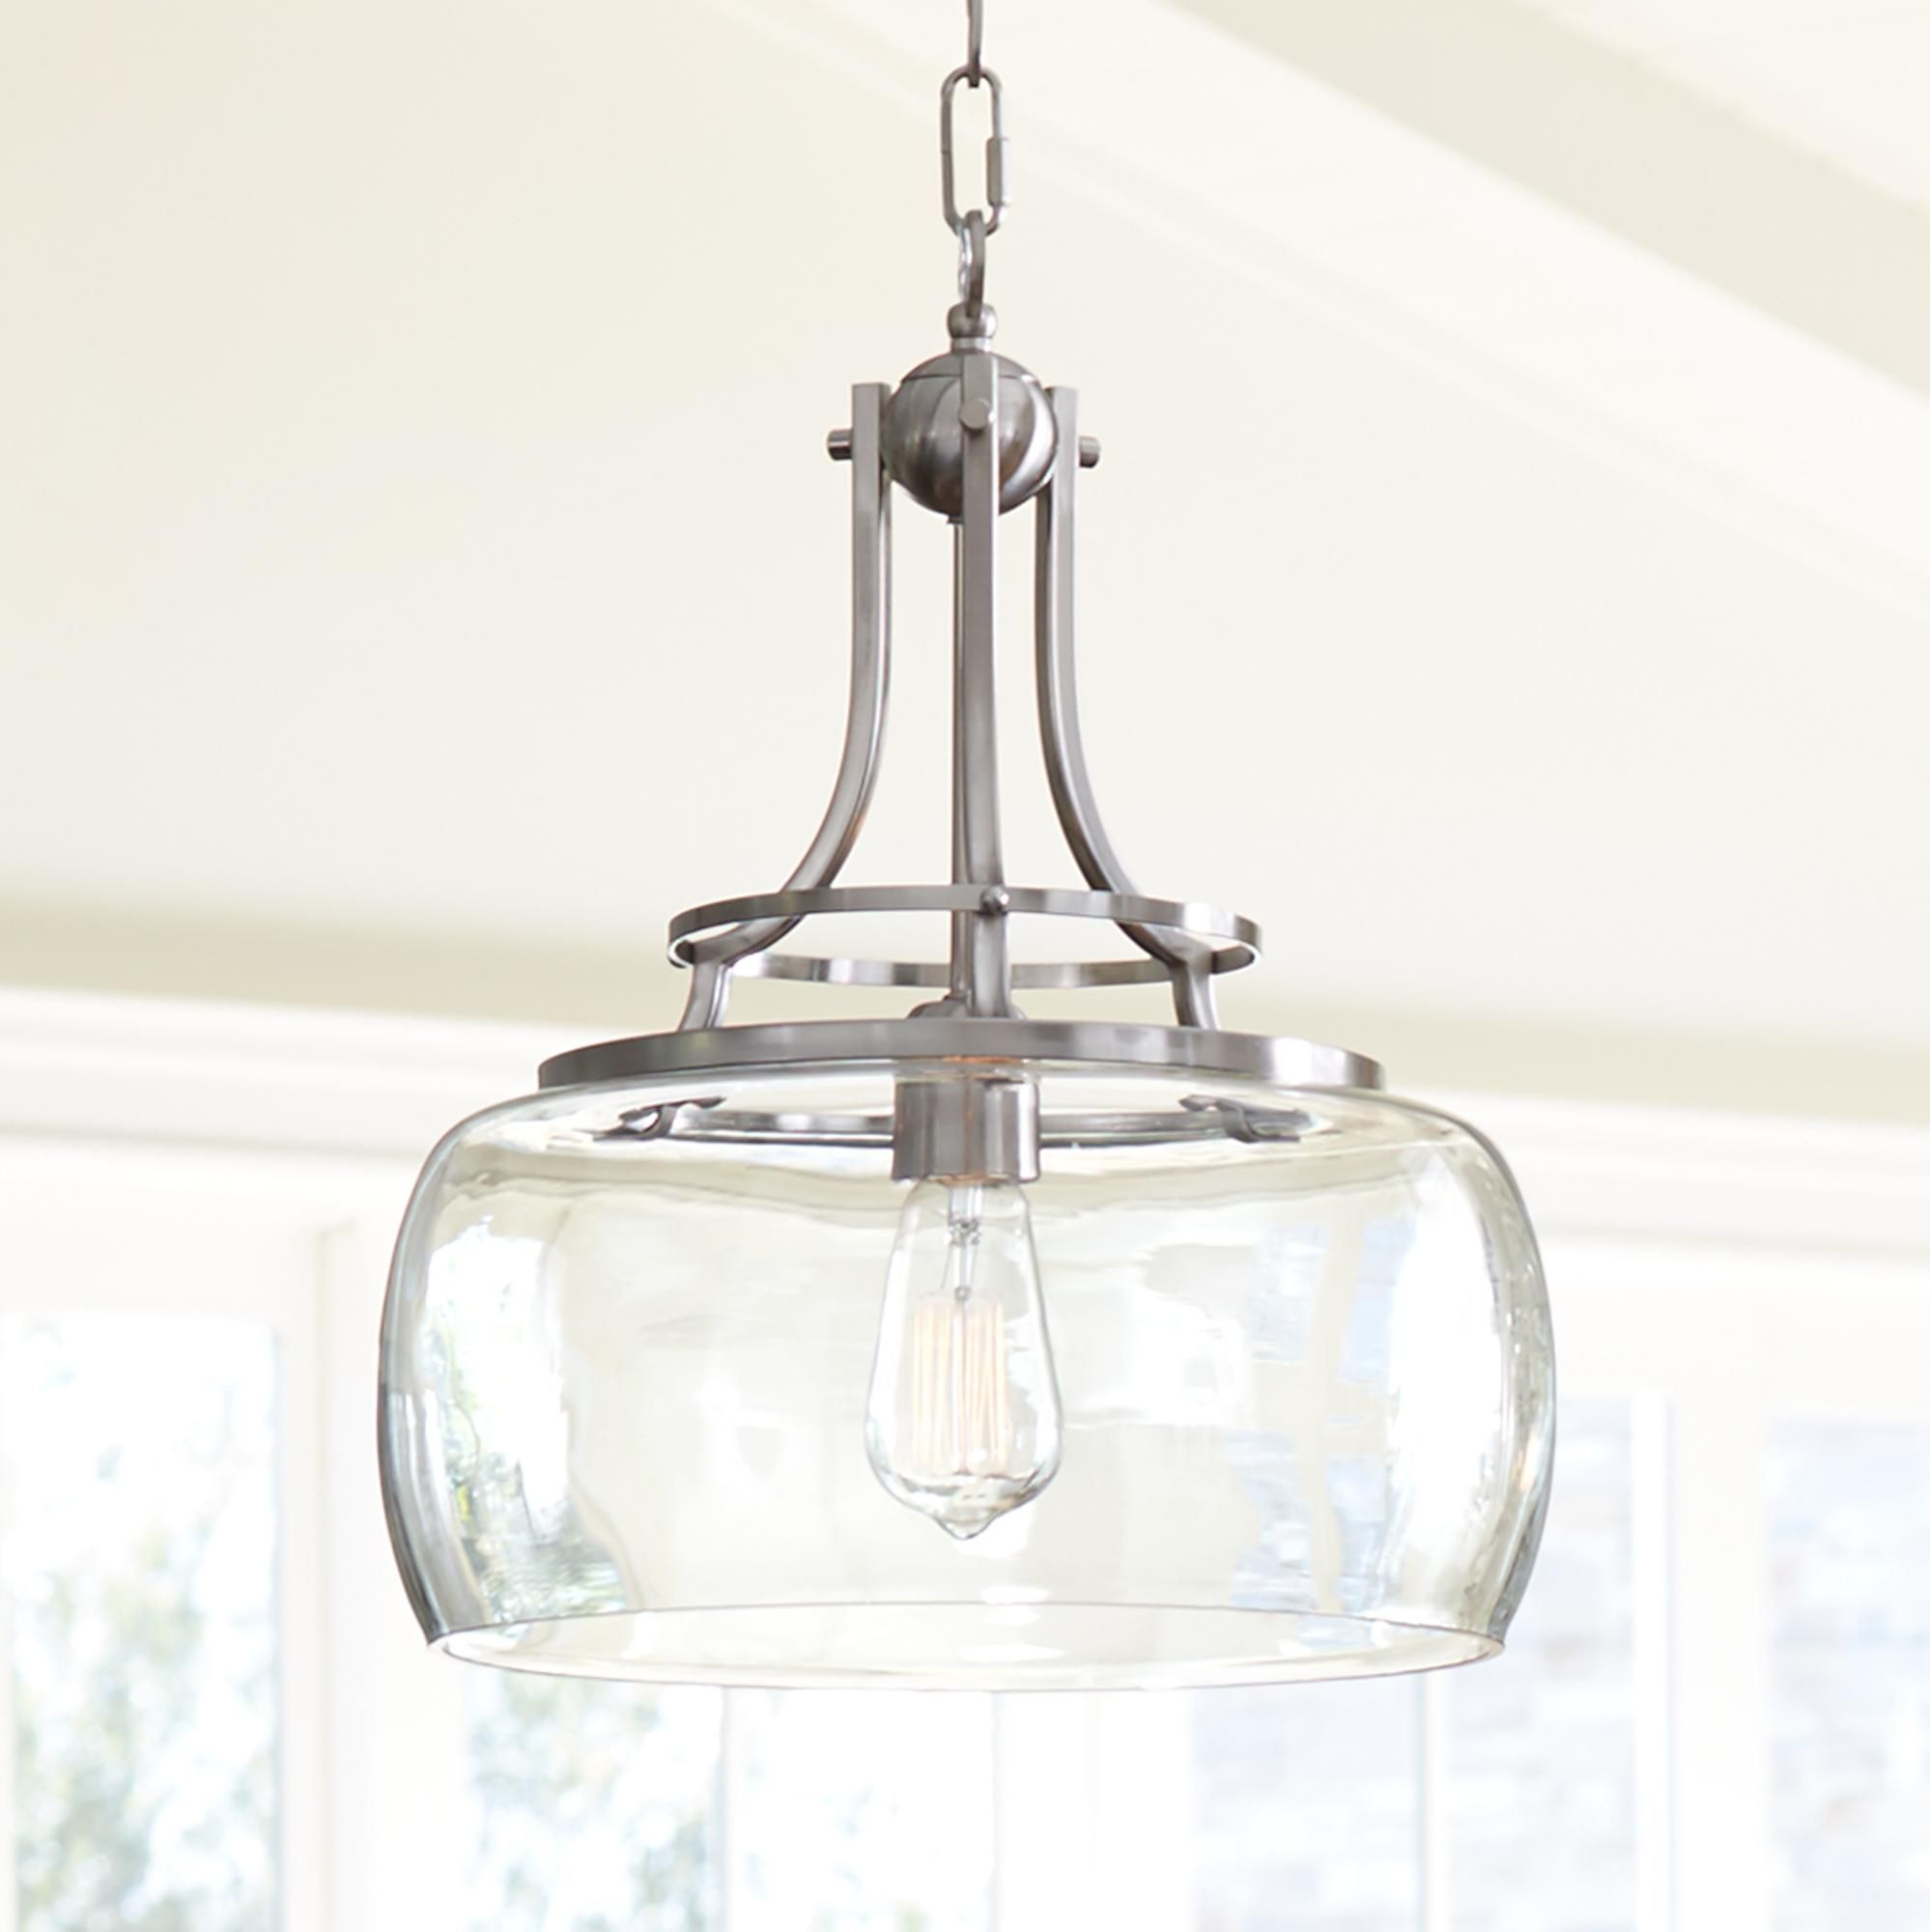 Pendant Lighting Brushed Nickel Charleston 13 1 2 Quot Wide Brushed Nickel Pendant Light